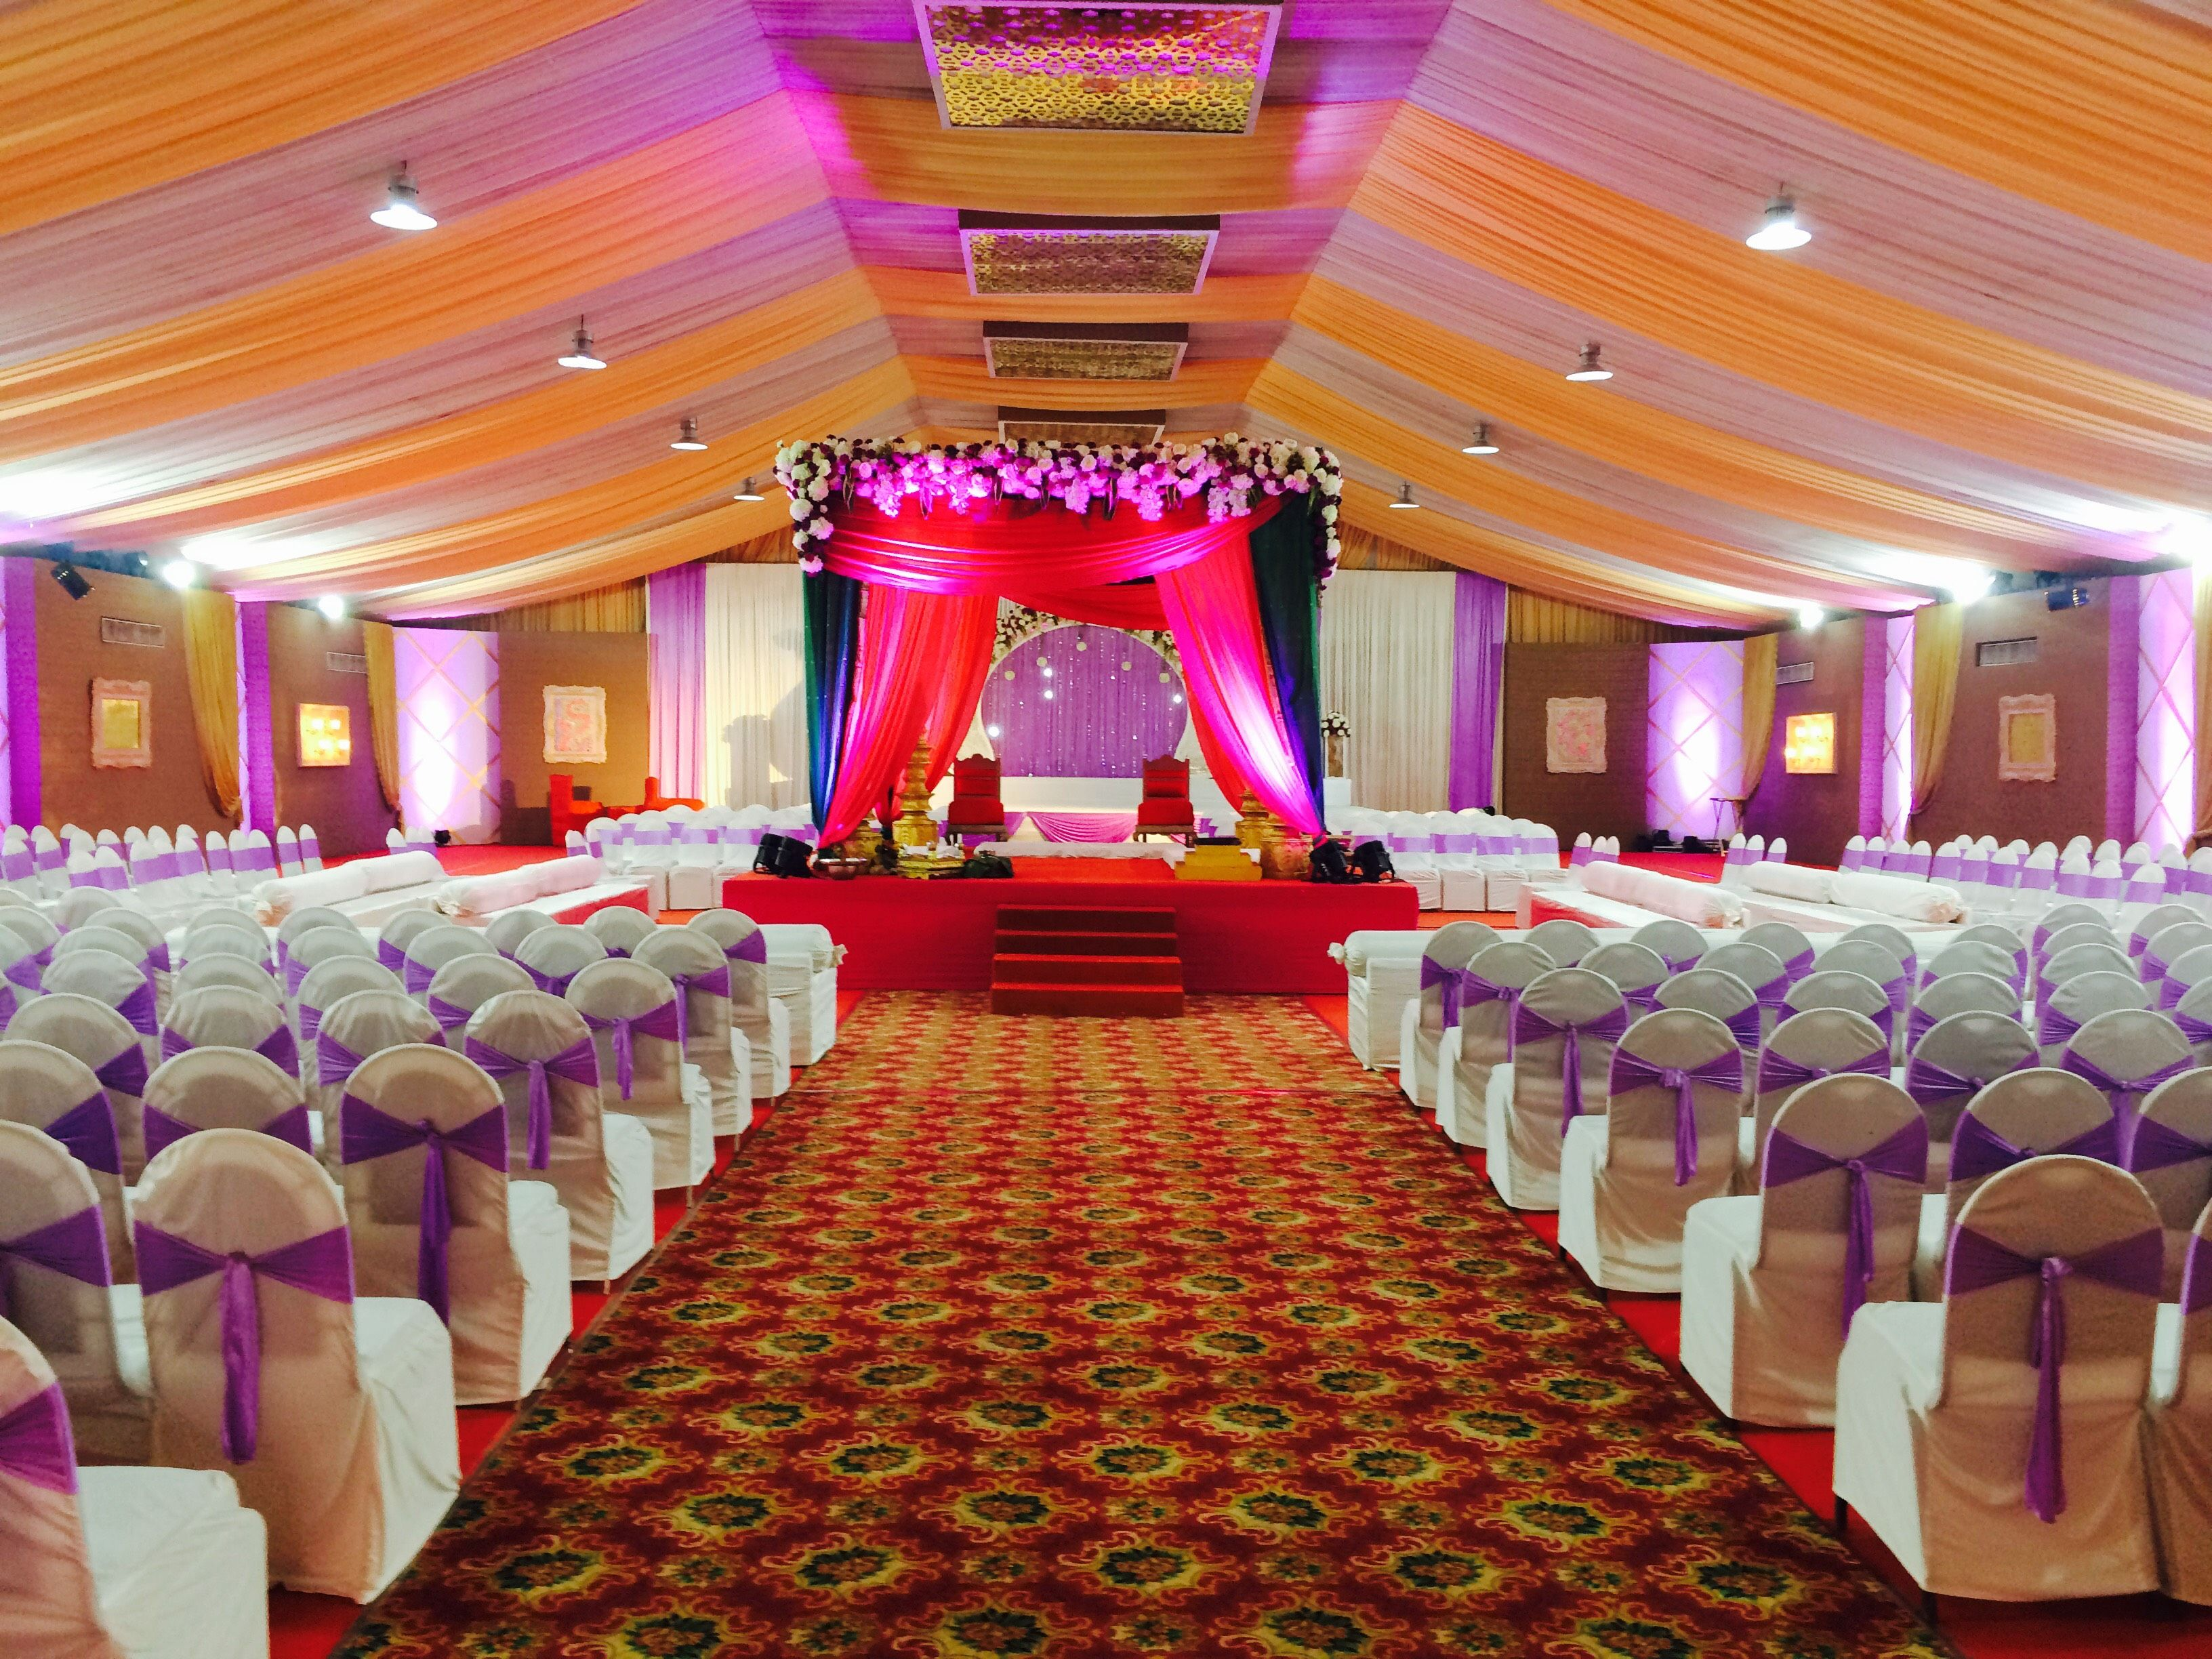 If You Are Looking For Ac Marriage Banquet Hall In Thane Hotel De Grandeur Offering Luxurious Ac Marriage Banq Banquet Hall Birthday Party Halls Function Hall